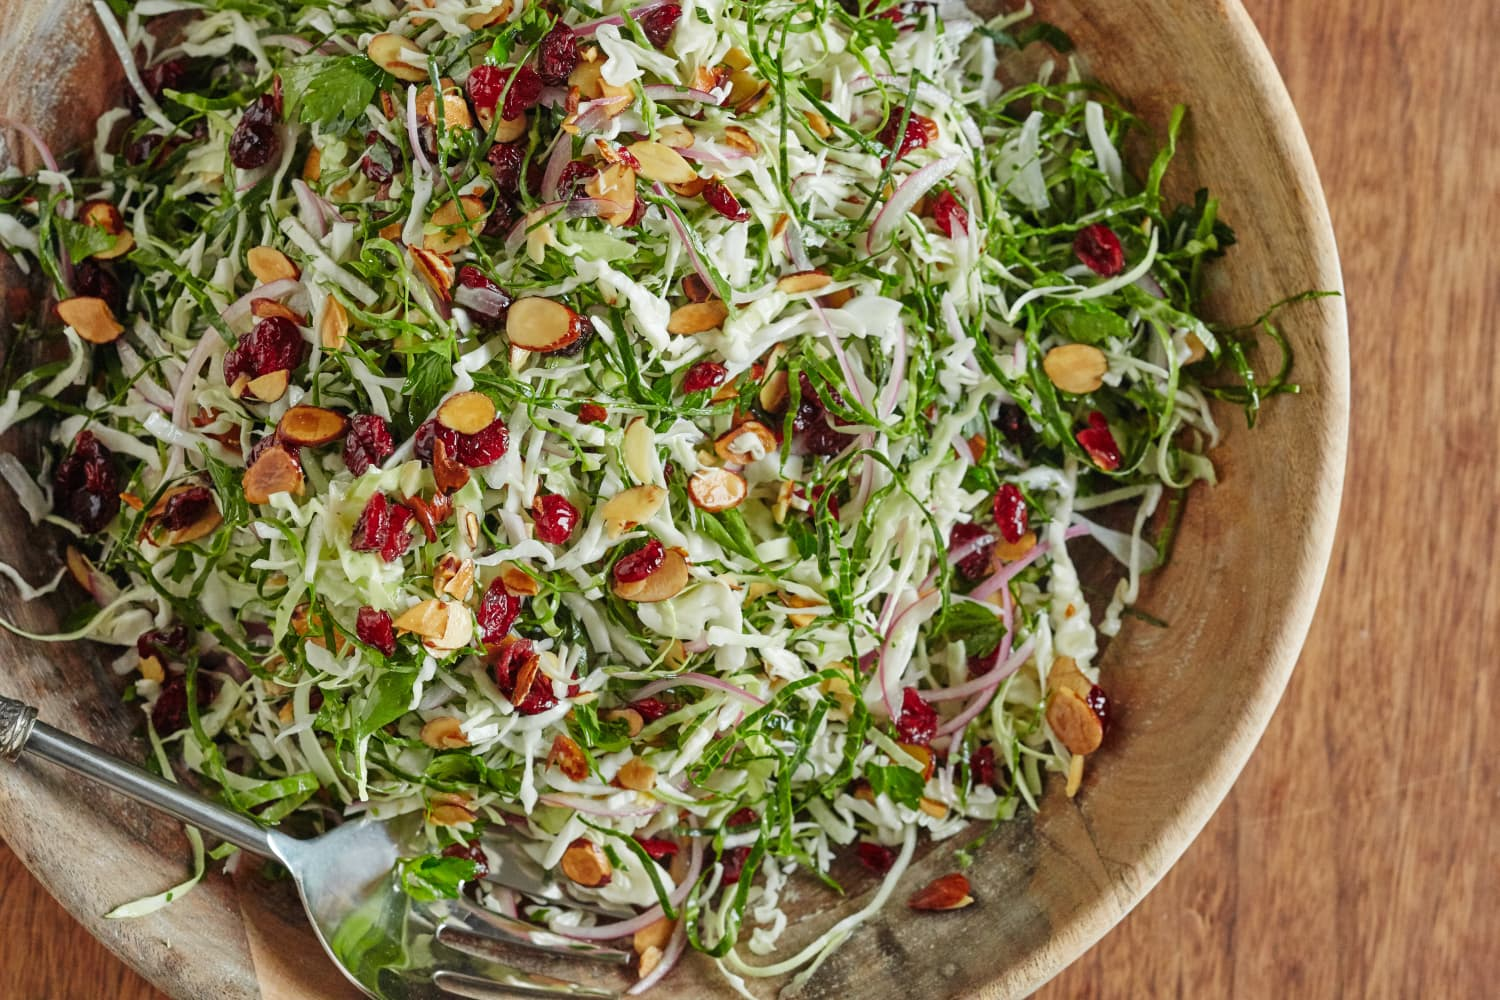 Your Thanksgiving Table Doesn't Need Salad, It Needs This Slaw